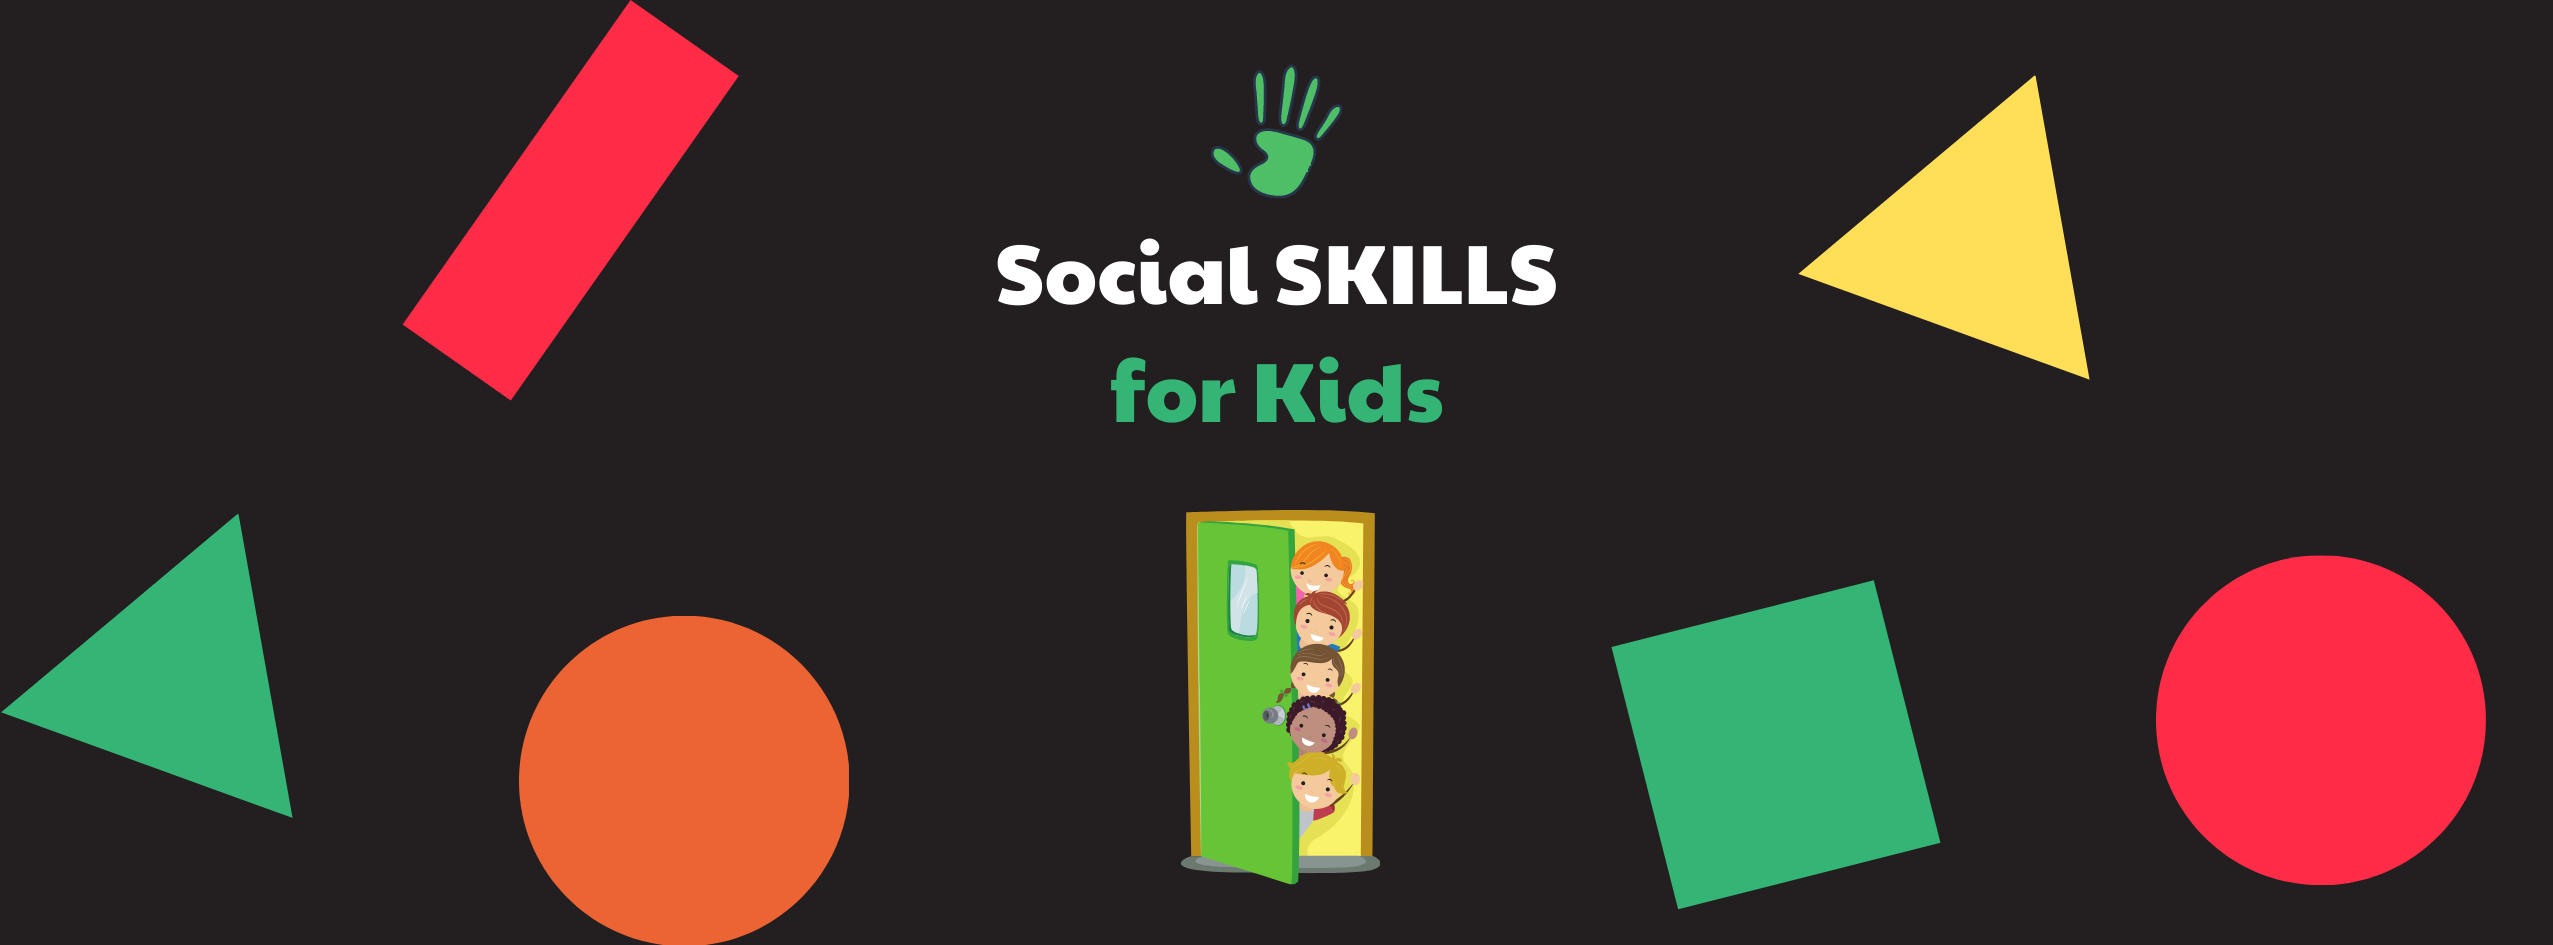 5 Critical Social Skills for Kids & How to teach them that?